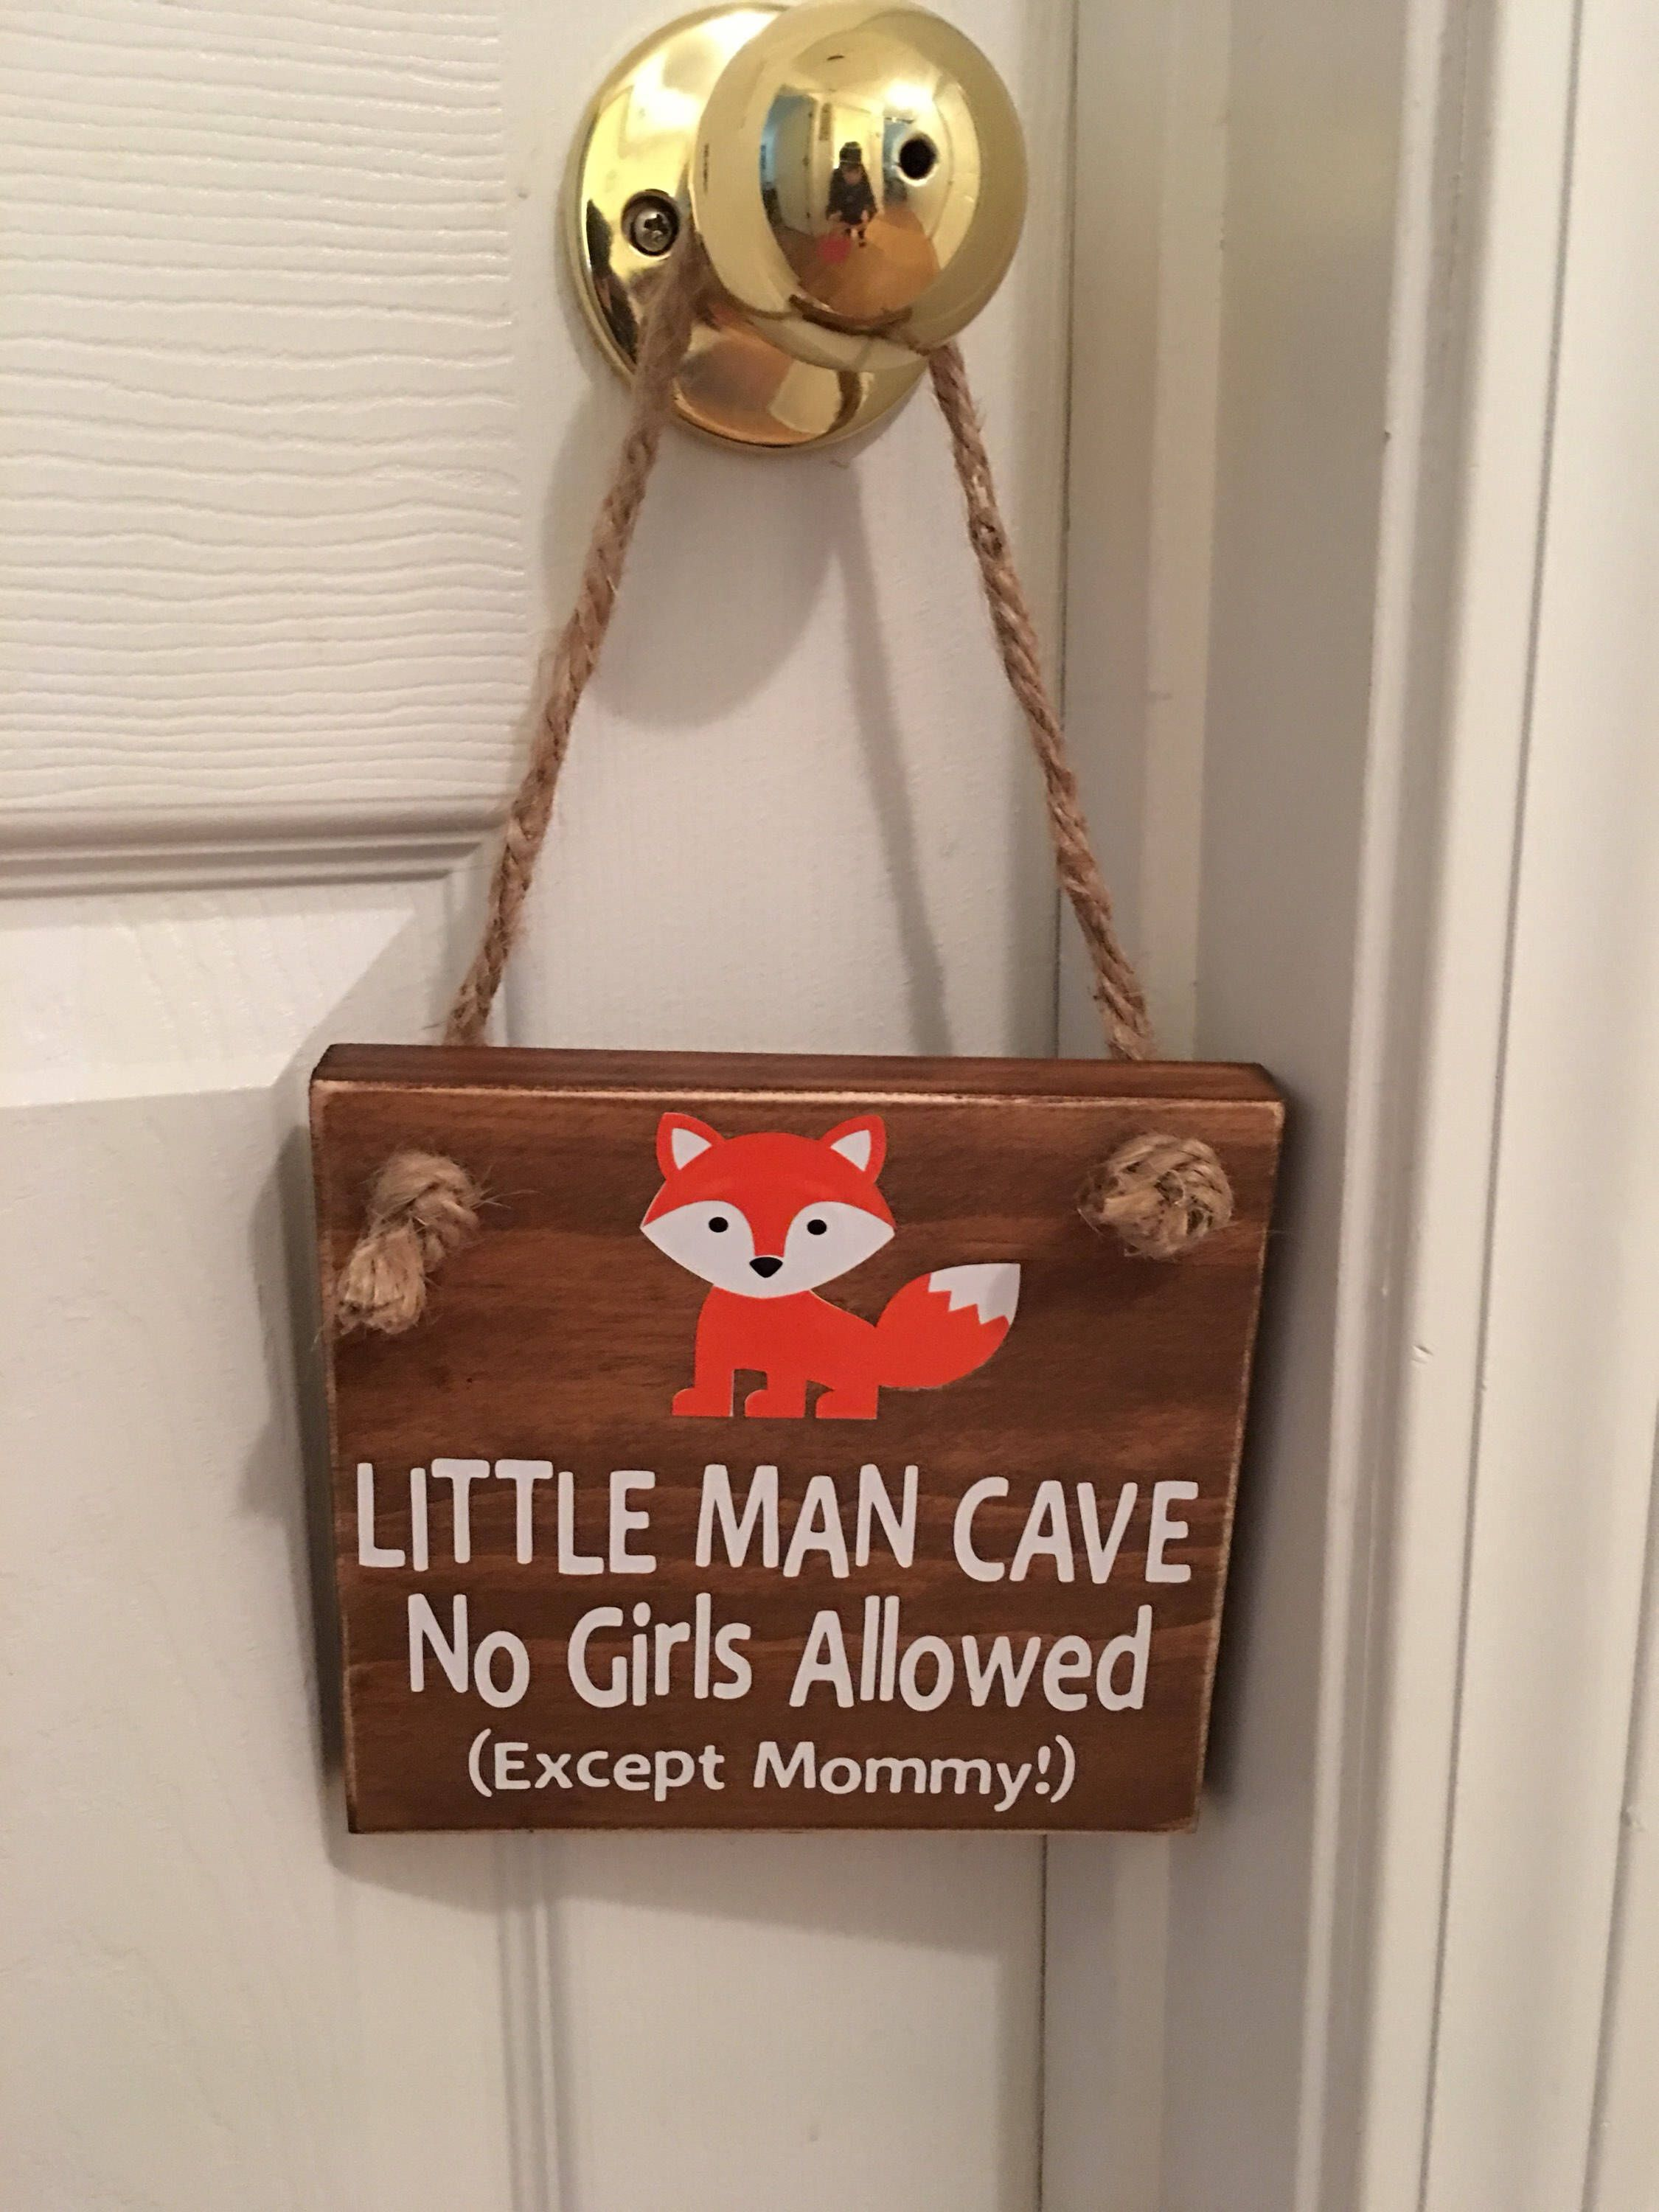 Adorable Rustic Little Man Cave No Girls Allowed (Except Mommy!) ™ With a Fox Wooden Door Sign for Little Boys Room / Nursery images